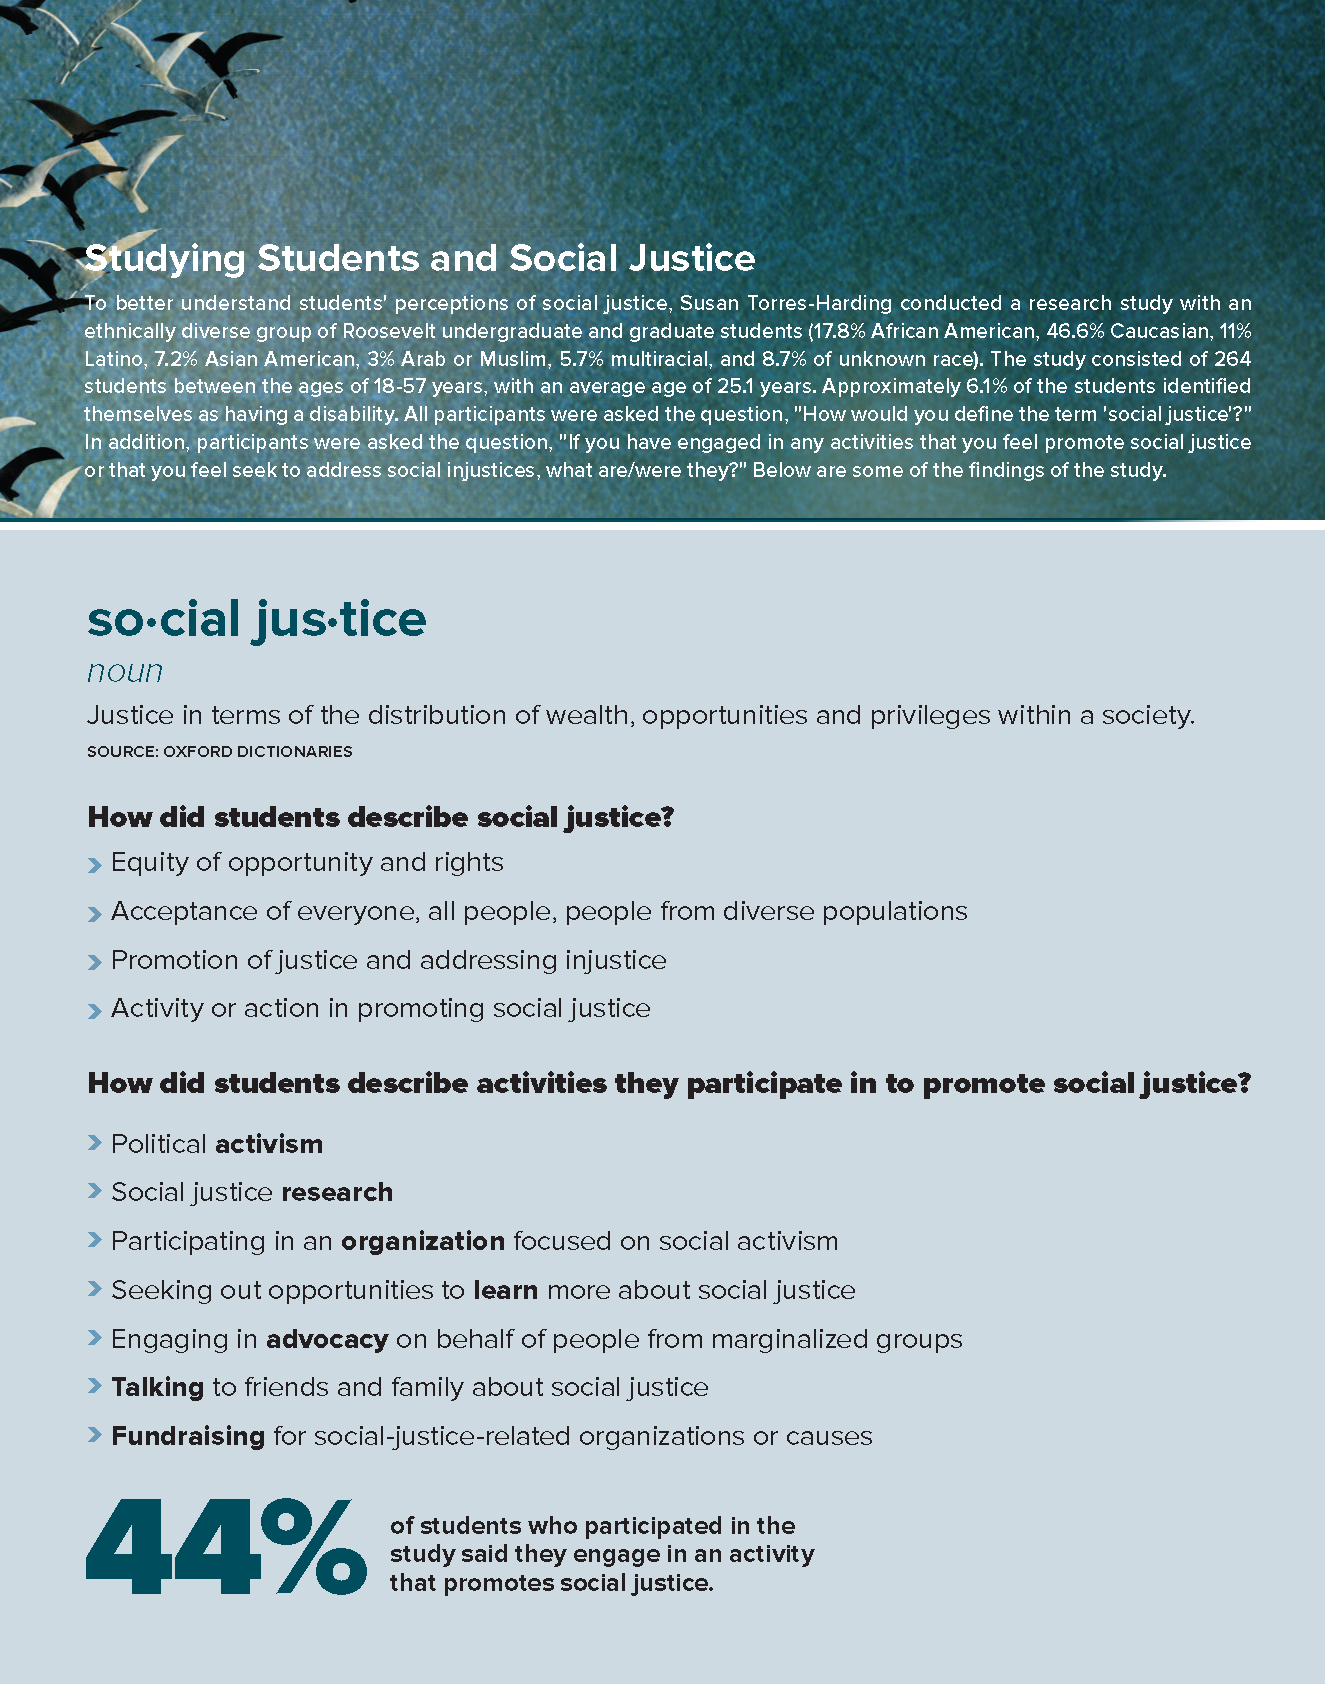 001 Social Justice Infographic Essay Singular Prompts Pdf Full